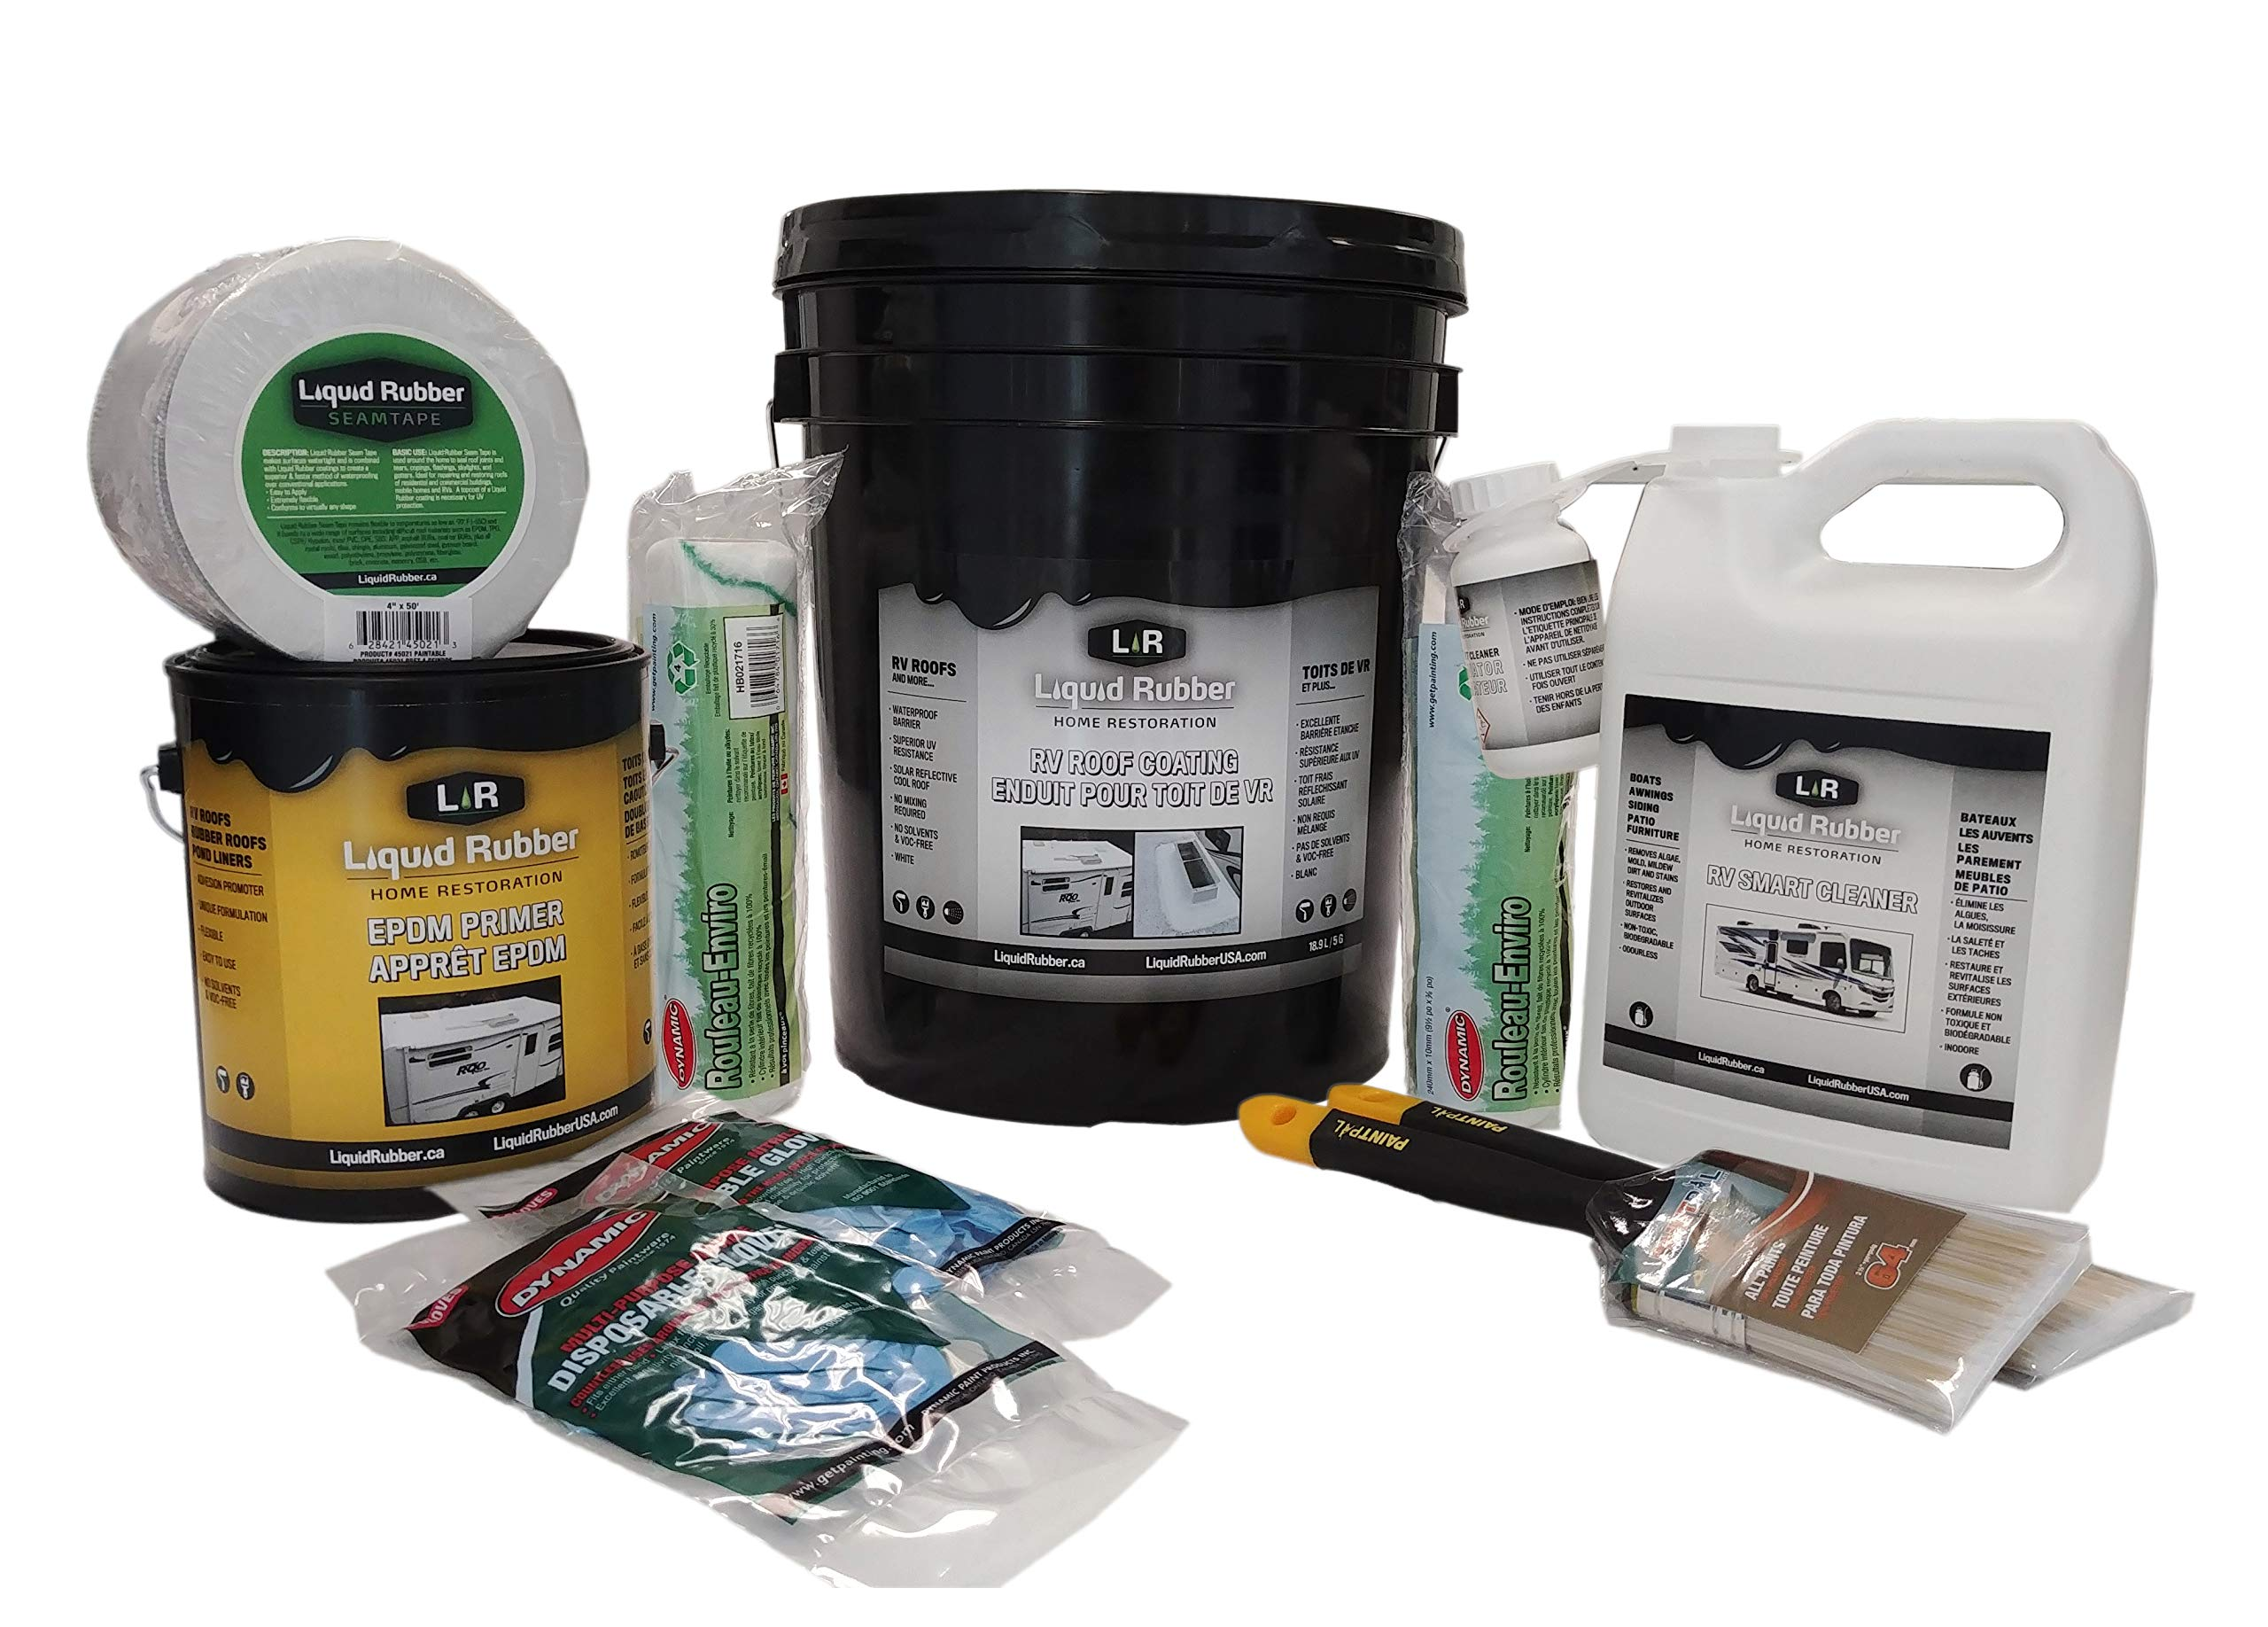 Liquid Rubber RV Roof Coating/Sealant 5 Gallon Kit - Includes RV Coating, 4'' x 50' Seam Tape, EPDM Primer, Cleaner, Brushes, Rollers, and Gloves | Brilliant White by Liquid Rubber USA (Image #1)